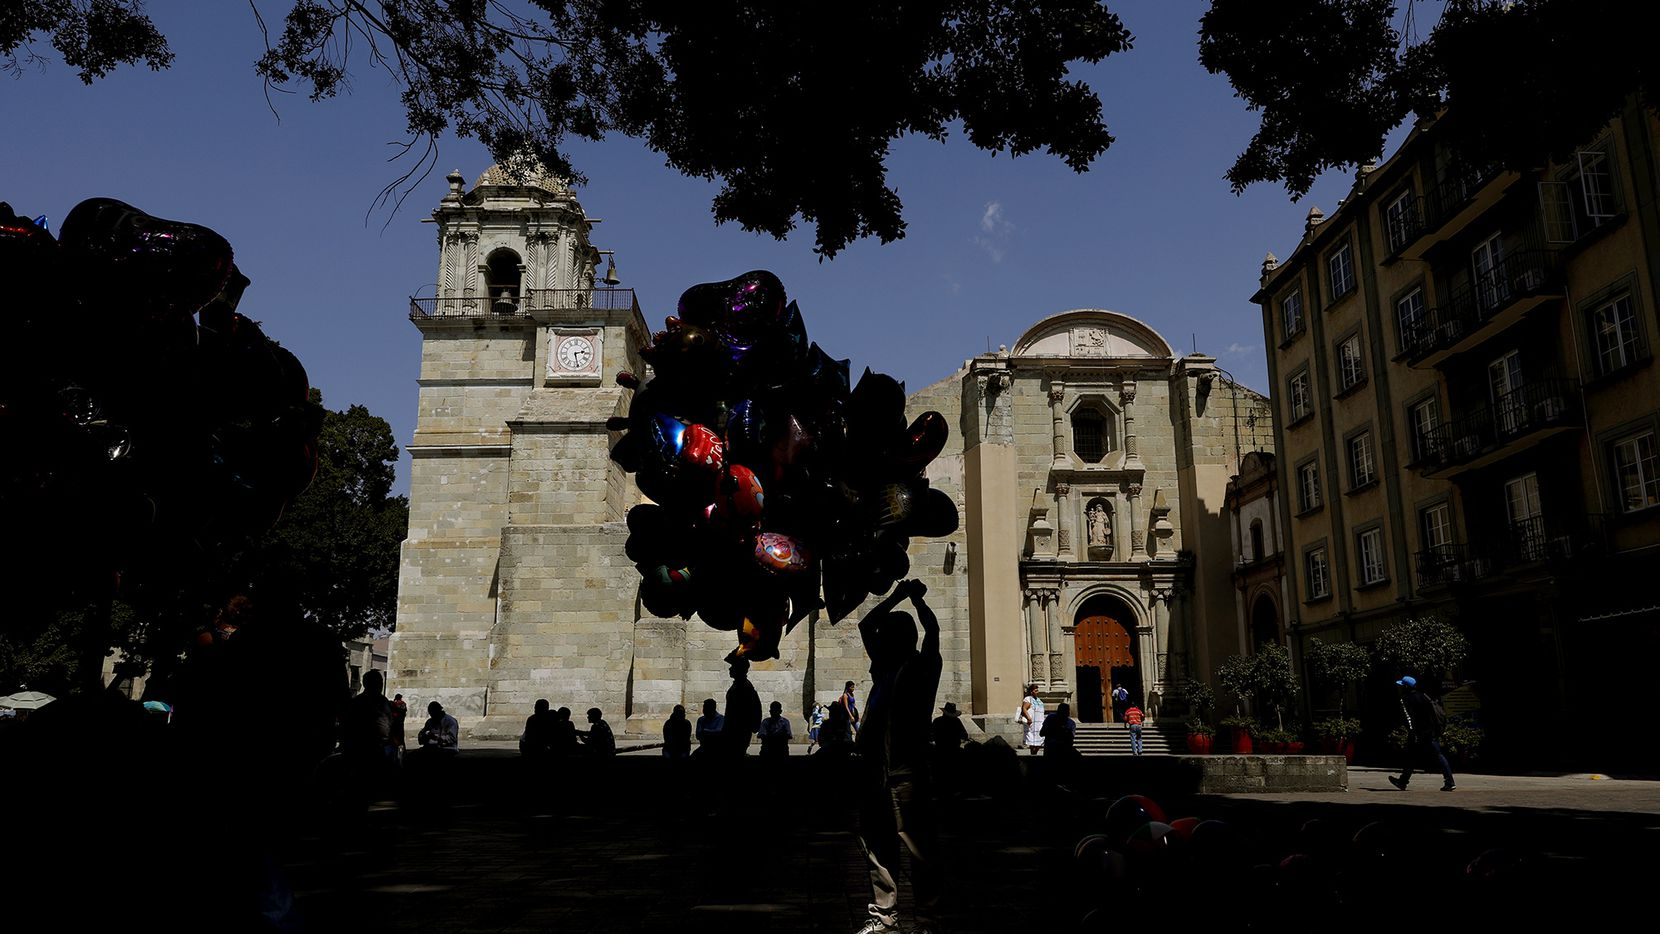 A balloon vendor is silhouetted against the Cathedral of Our Lady of the Assumption in Oaxaca.